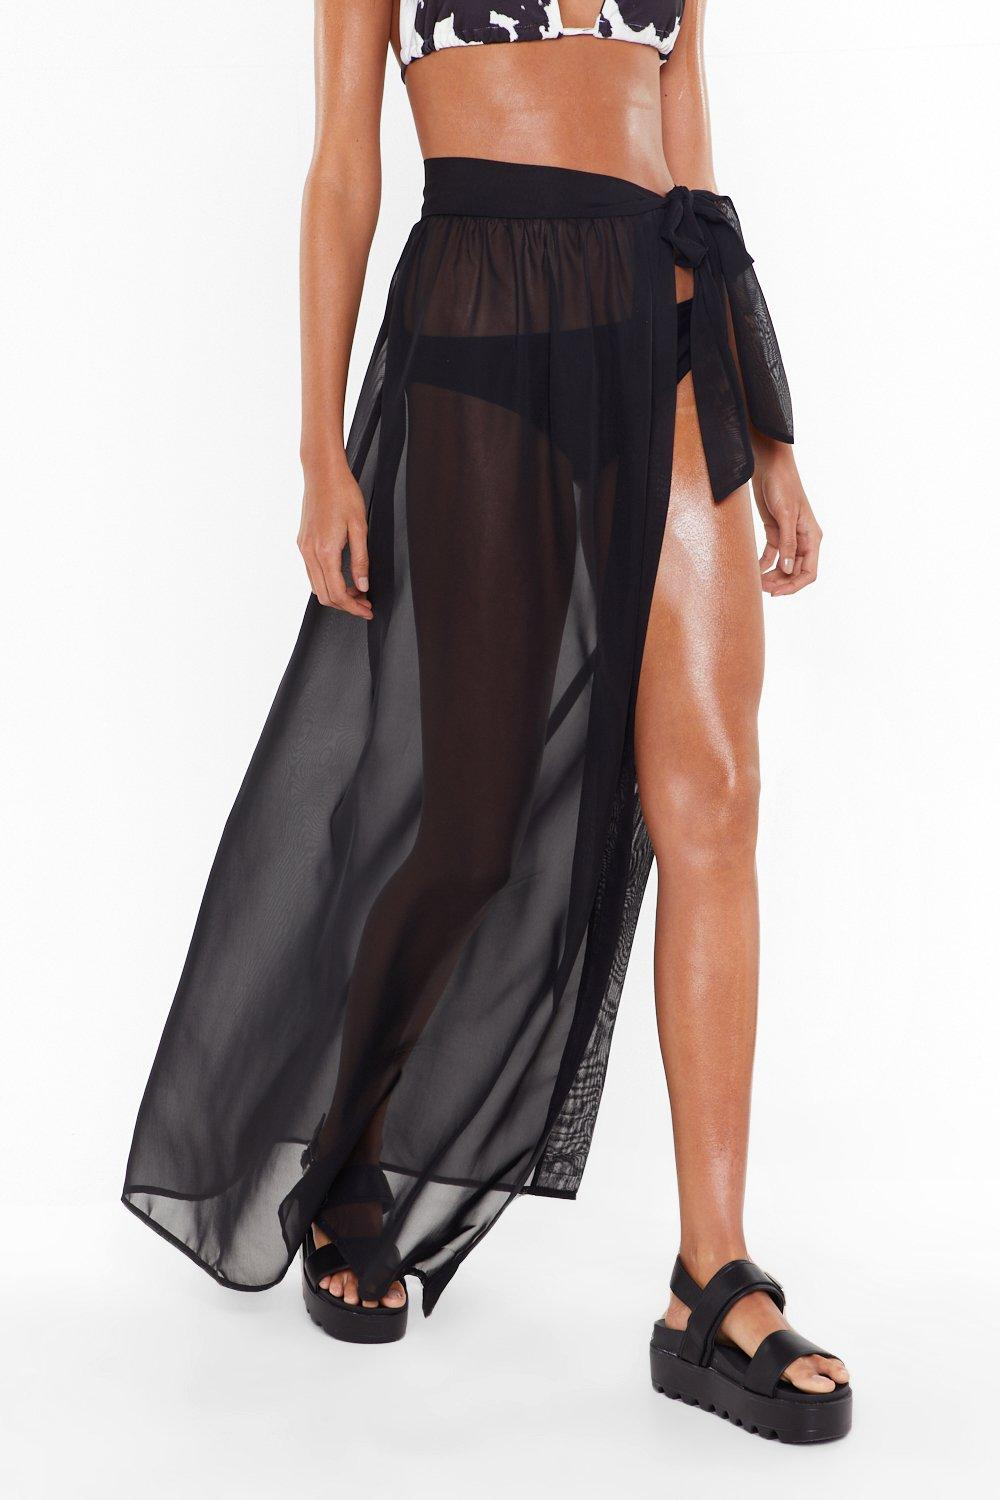 6de072a4b MS Tie Side Chiffon Beach Maxi Skirt | Shop Clothes at Nasty Gal!